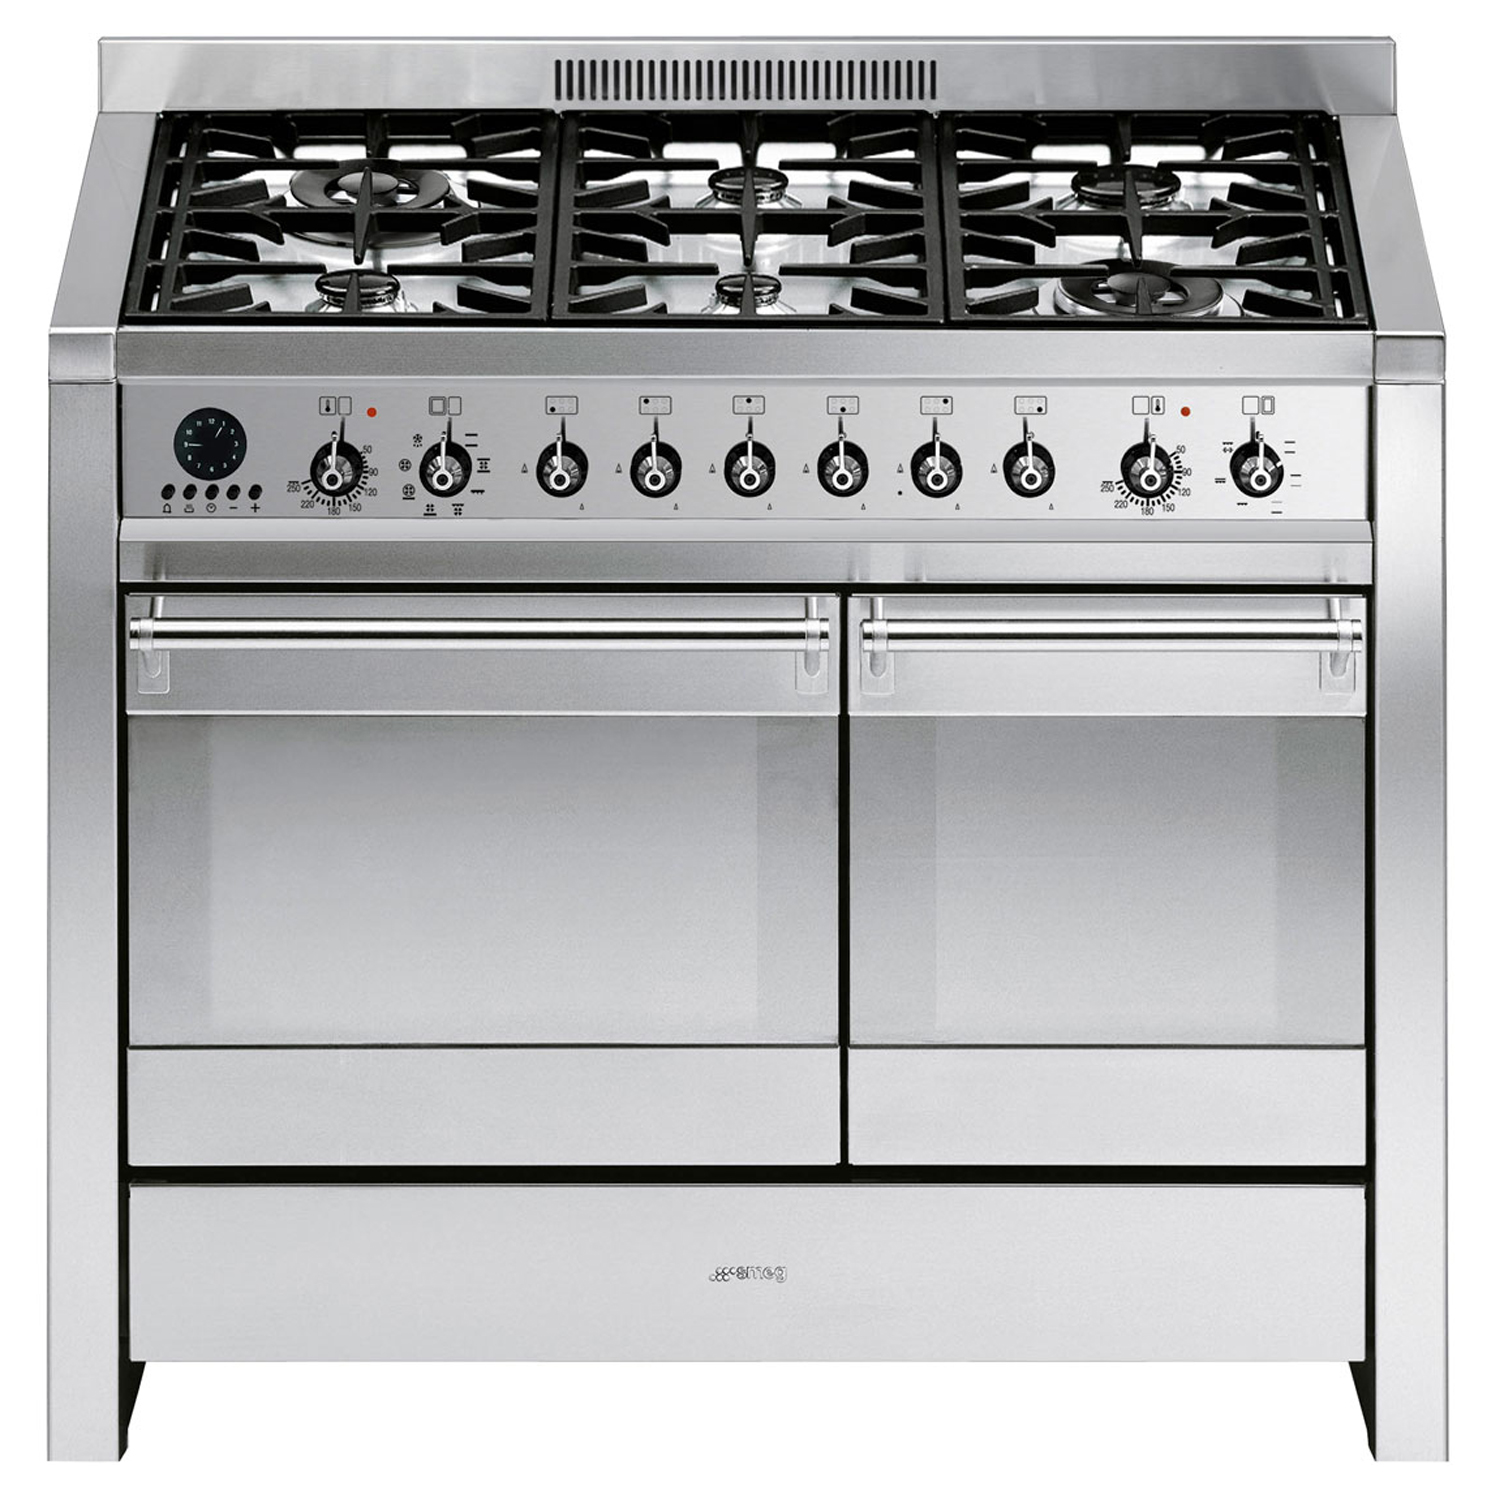 Smeg A2-8 Cooker 100cm, Stainless Steel